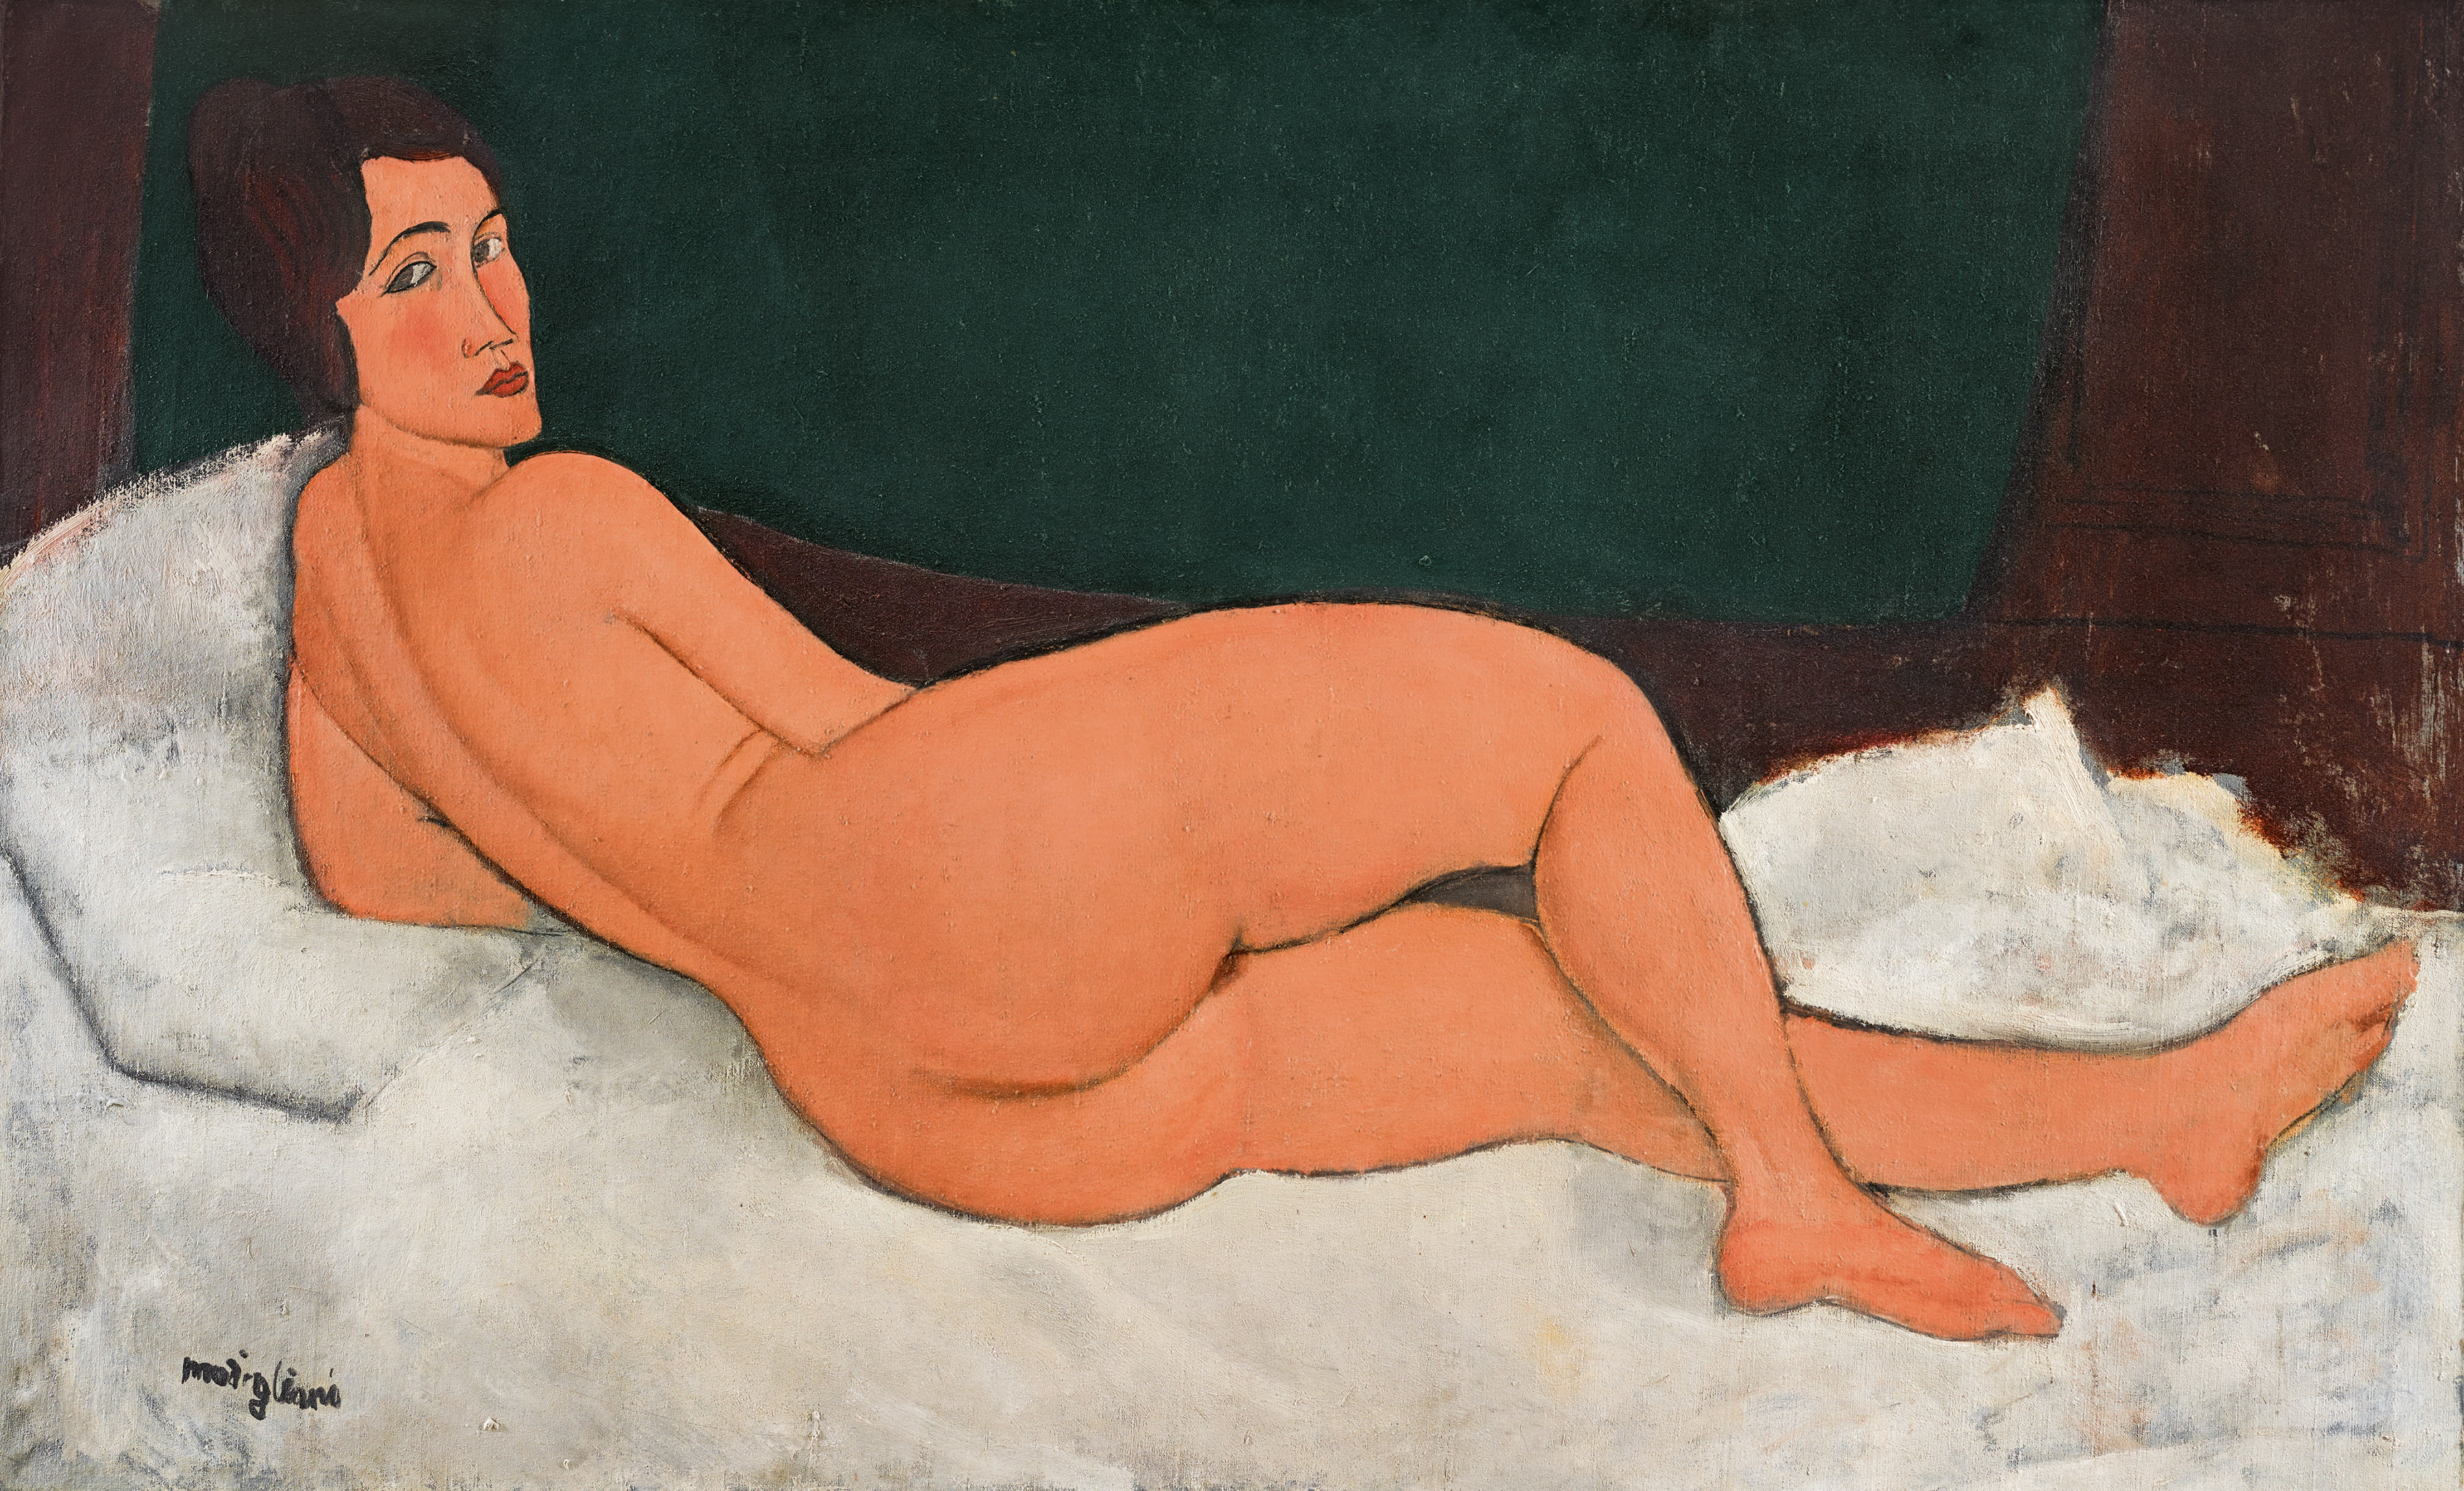 Modigliani 'Nu Couché' becomes one of the world's most expensive paintings  - CNN Style